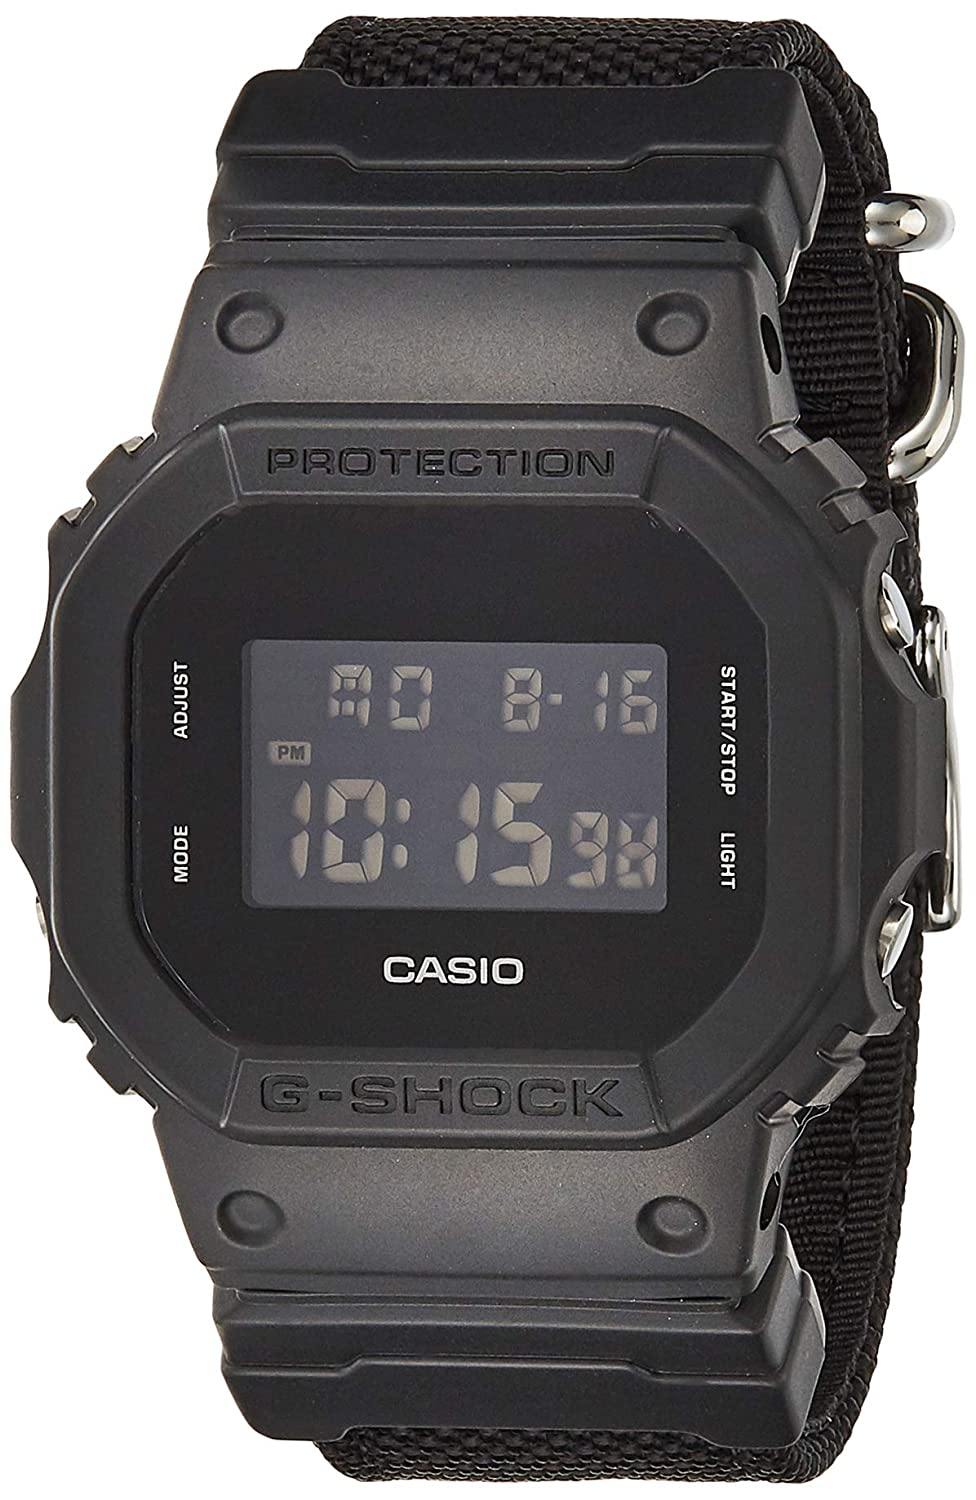 Casio DW-5600BBN-1 G-Shock Black Out Basic Digital Men s Watch Nylon Band